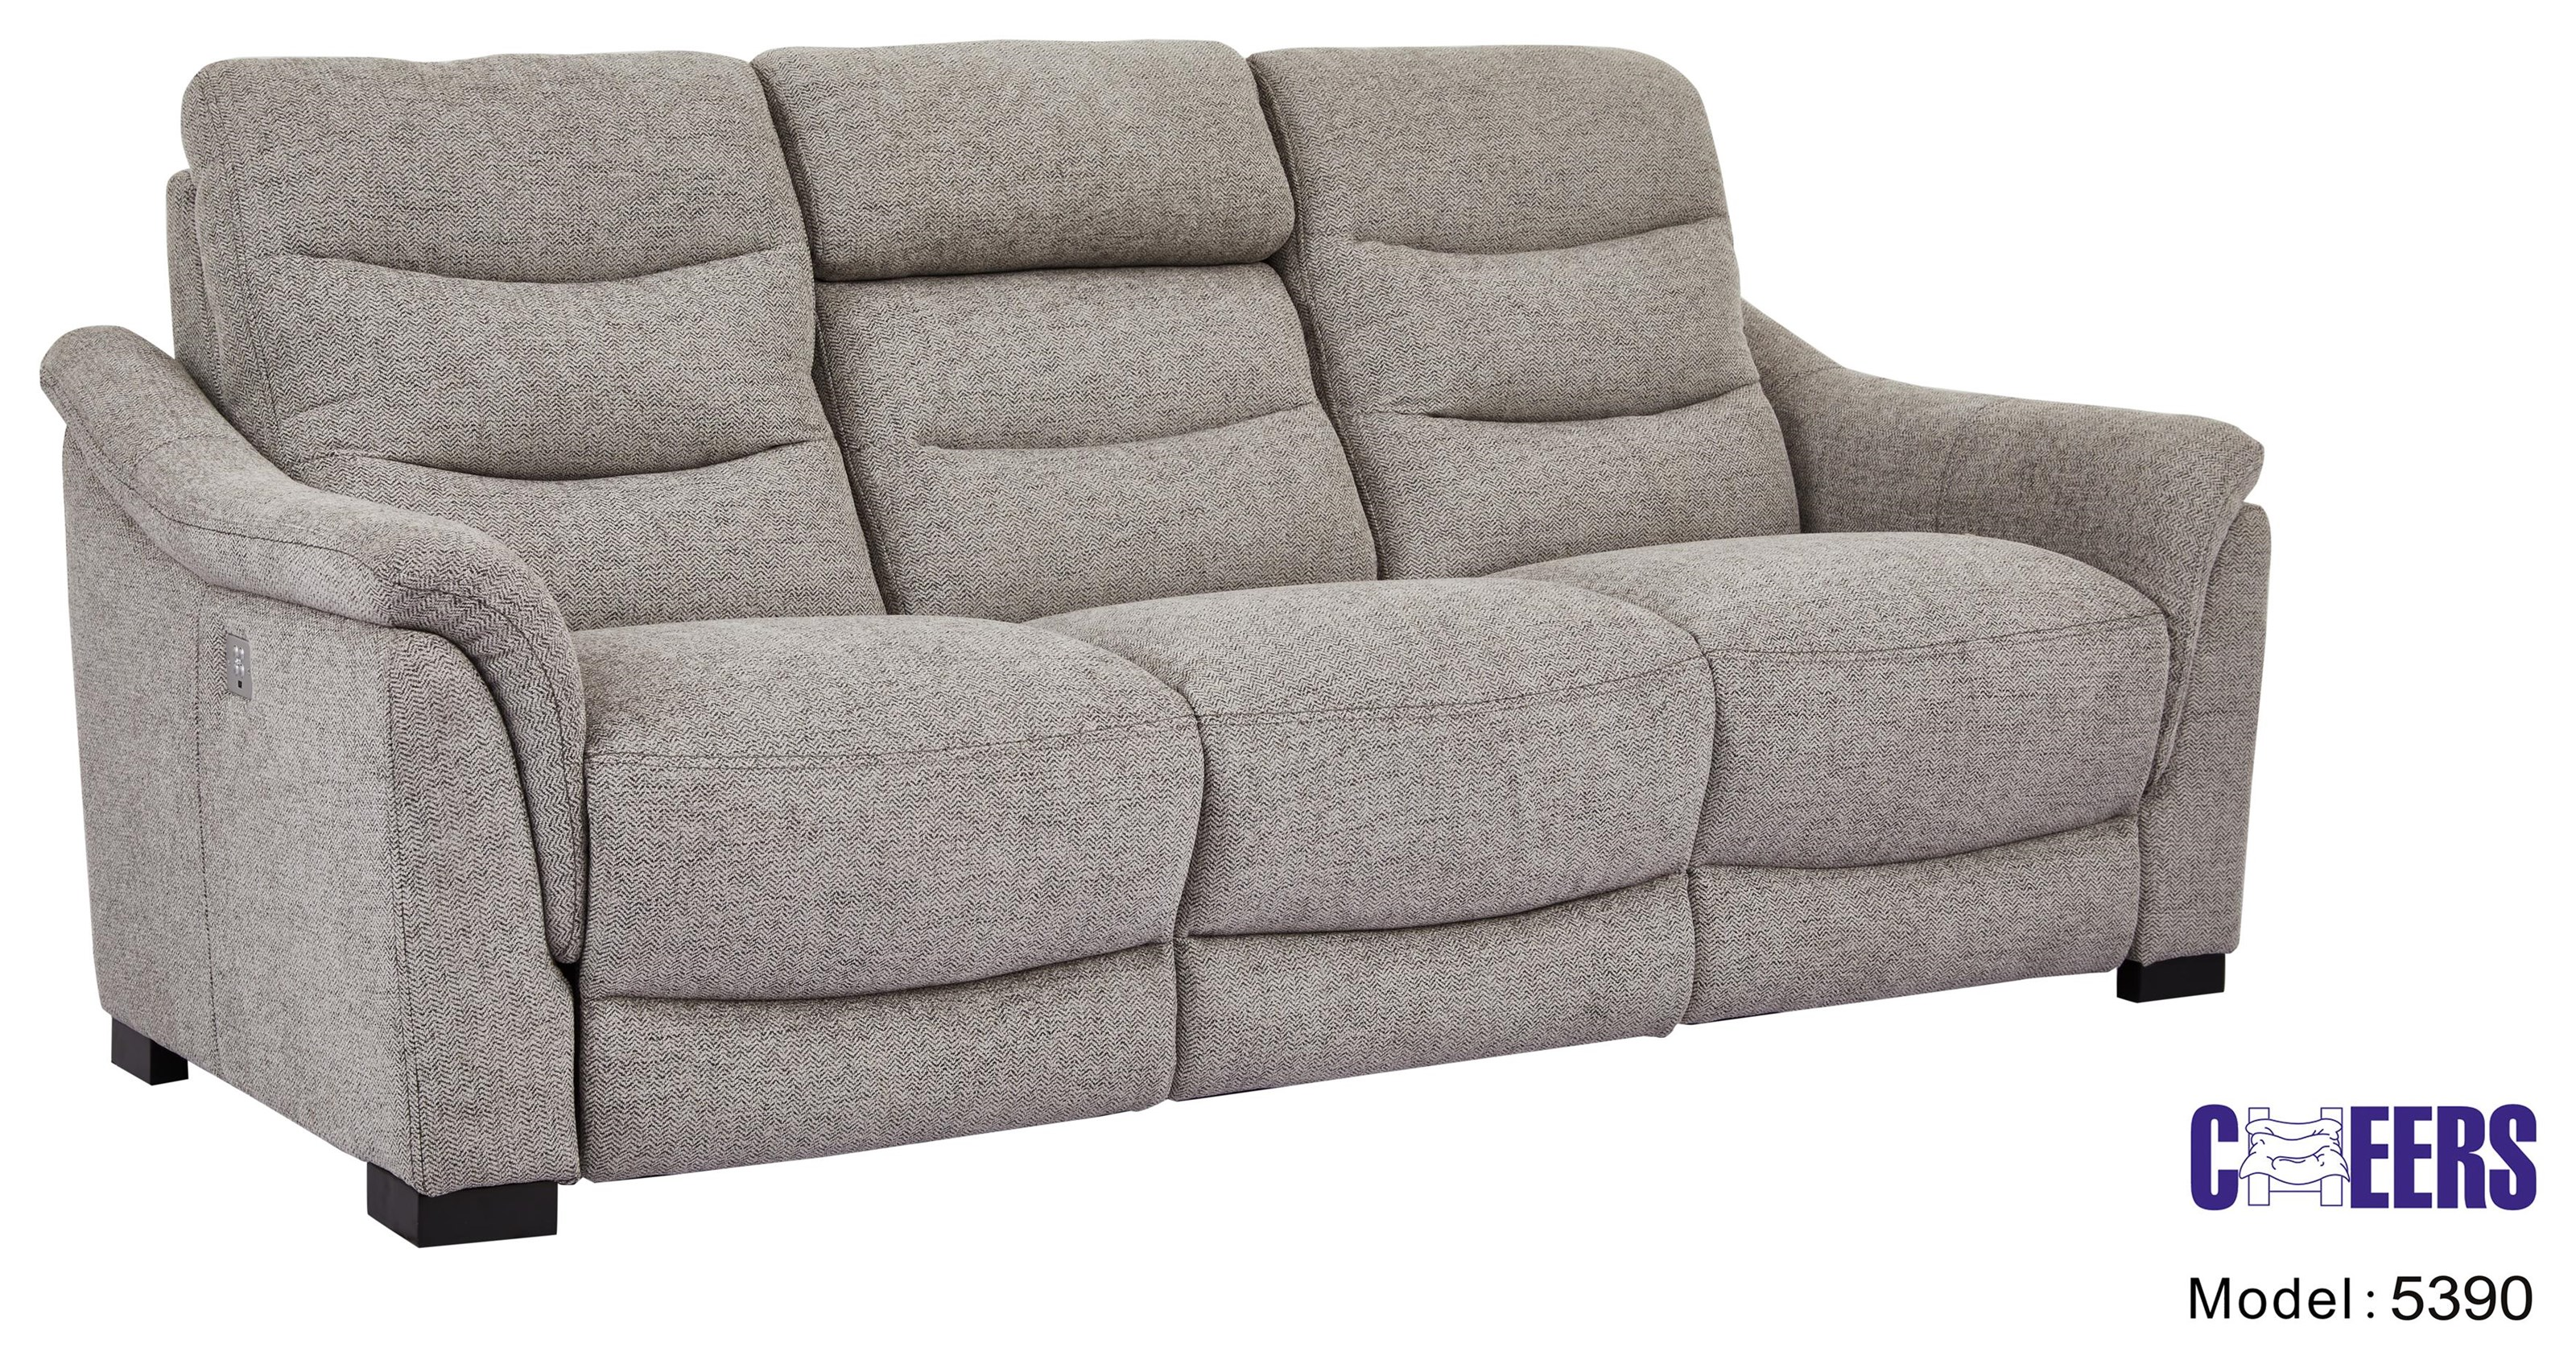 5390 Power Head Sofa w/ Drop Table & Lights by Cheers at Westrich Furniture & Appliances